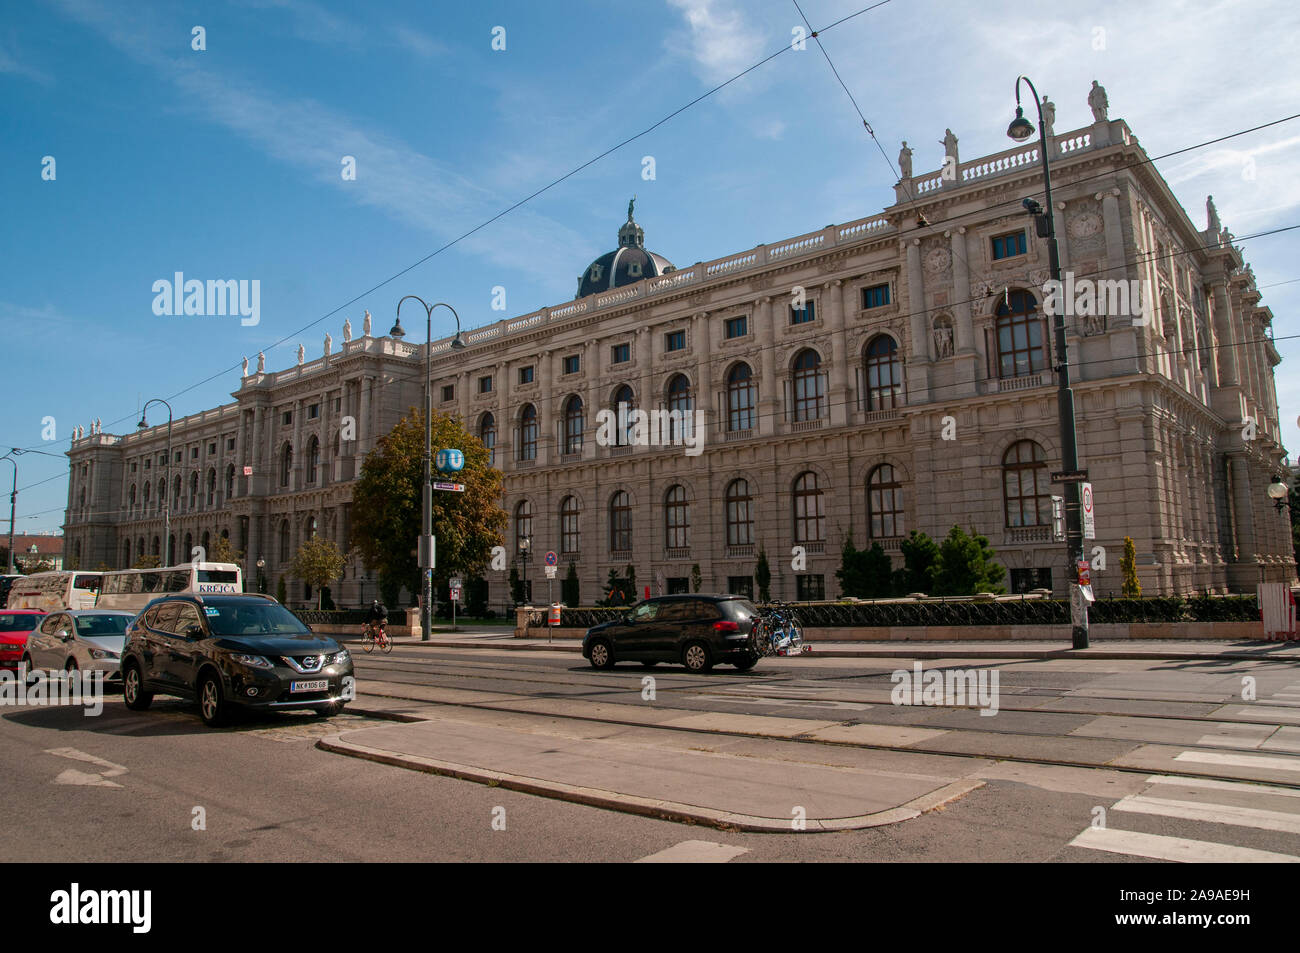 Exterior of the Natural History Museum, Vienna, Austria Stock Photo